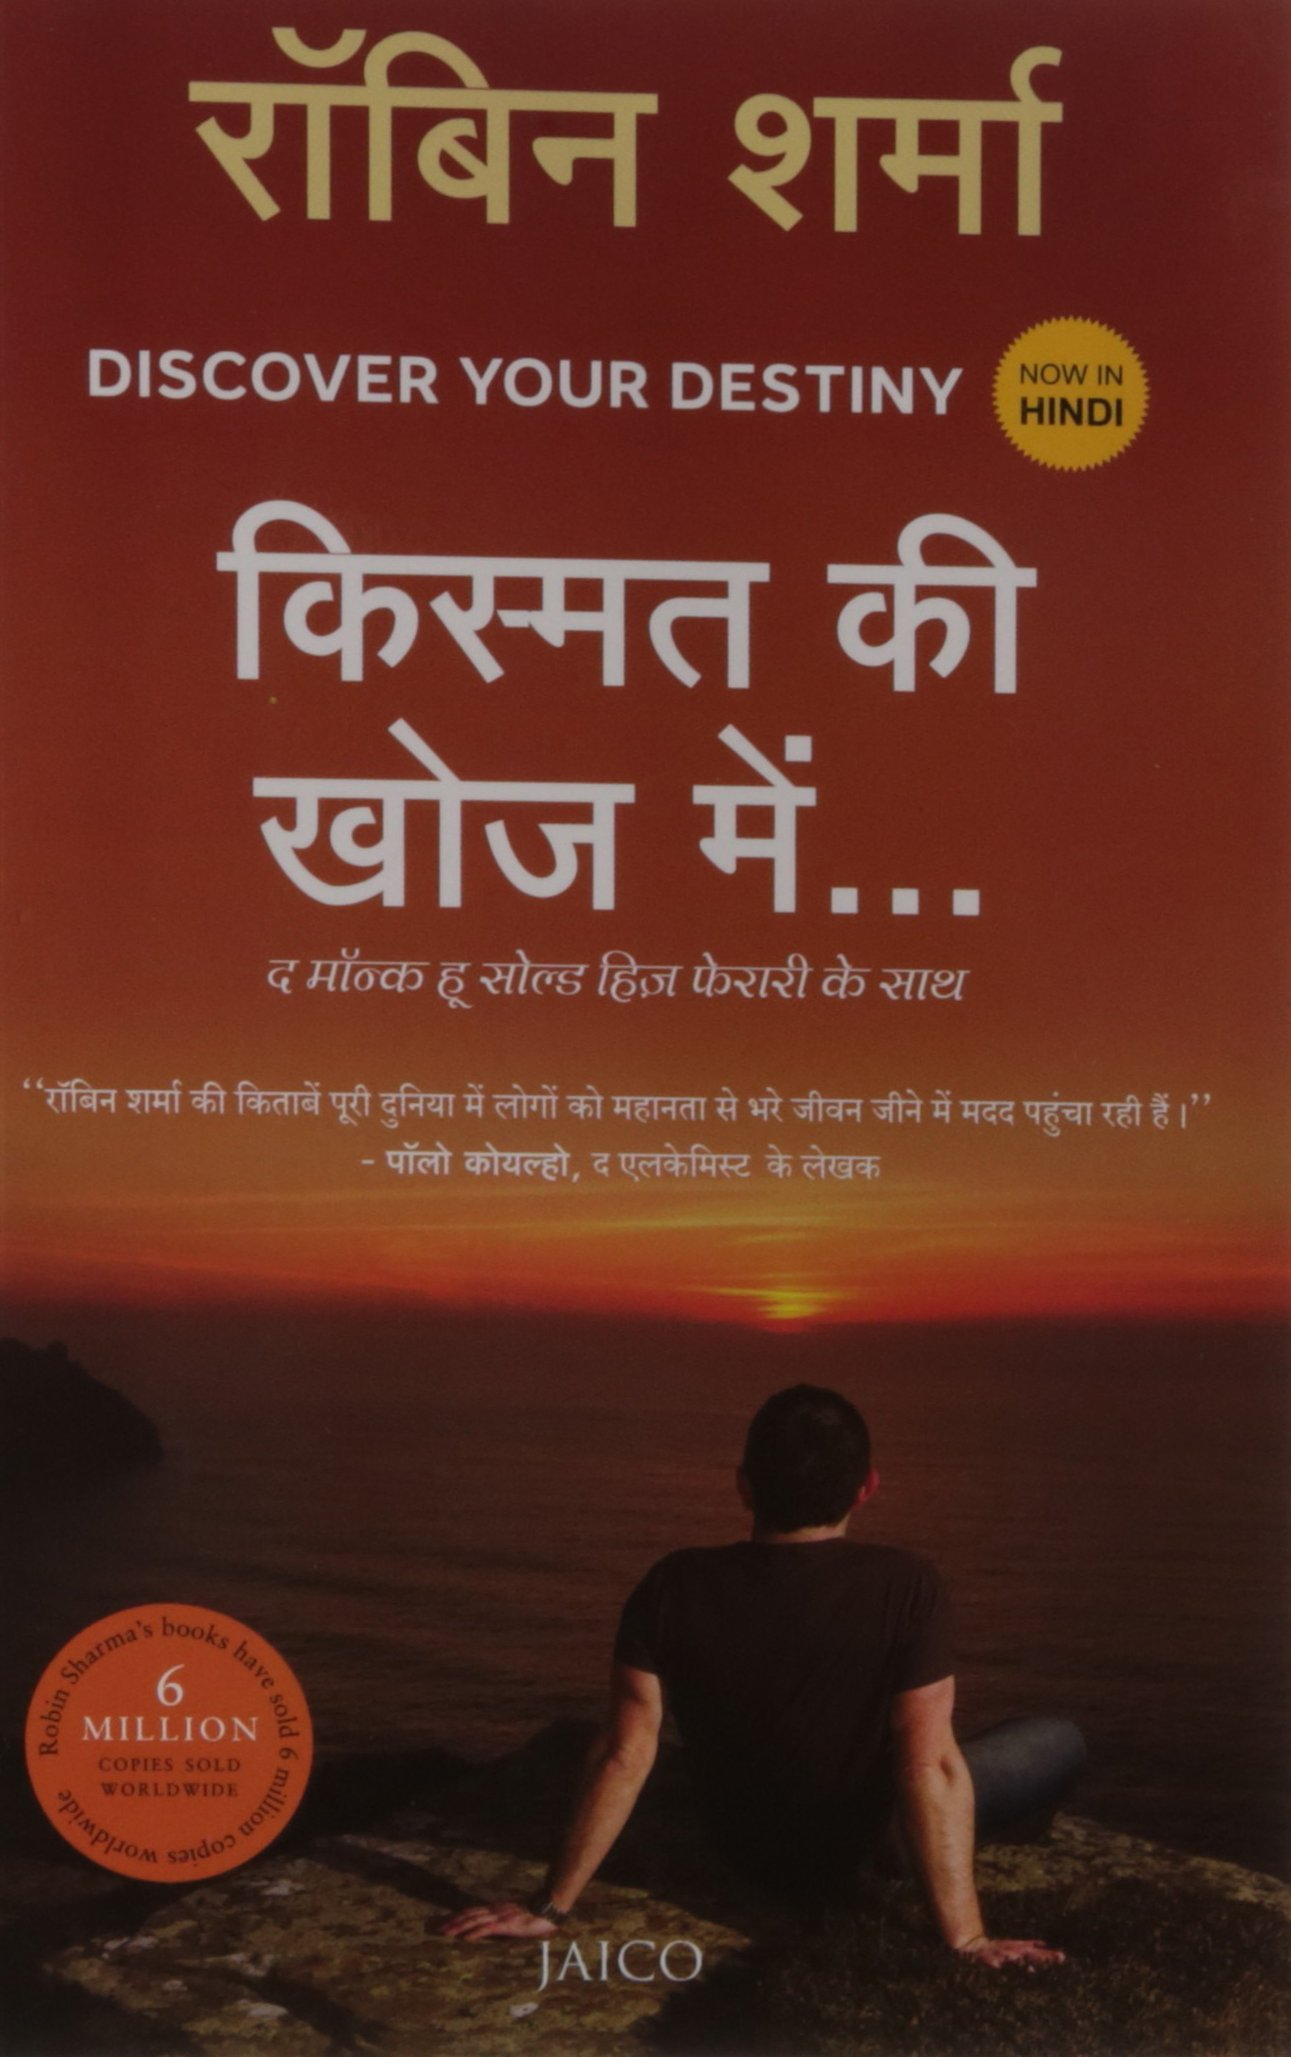 Buy Discover Your Destiny (Hindi) Book Online at Low Prices